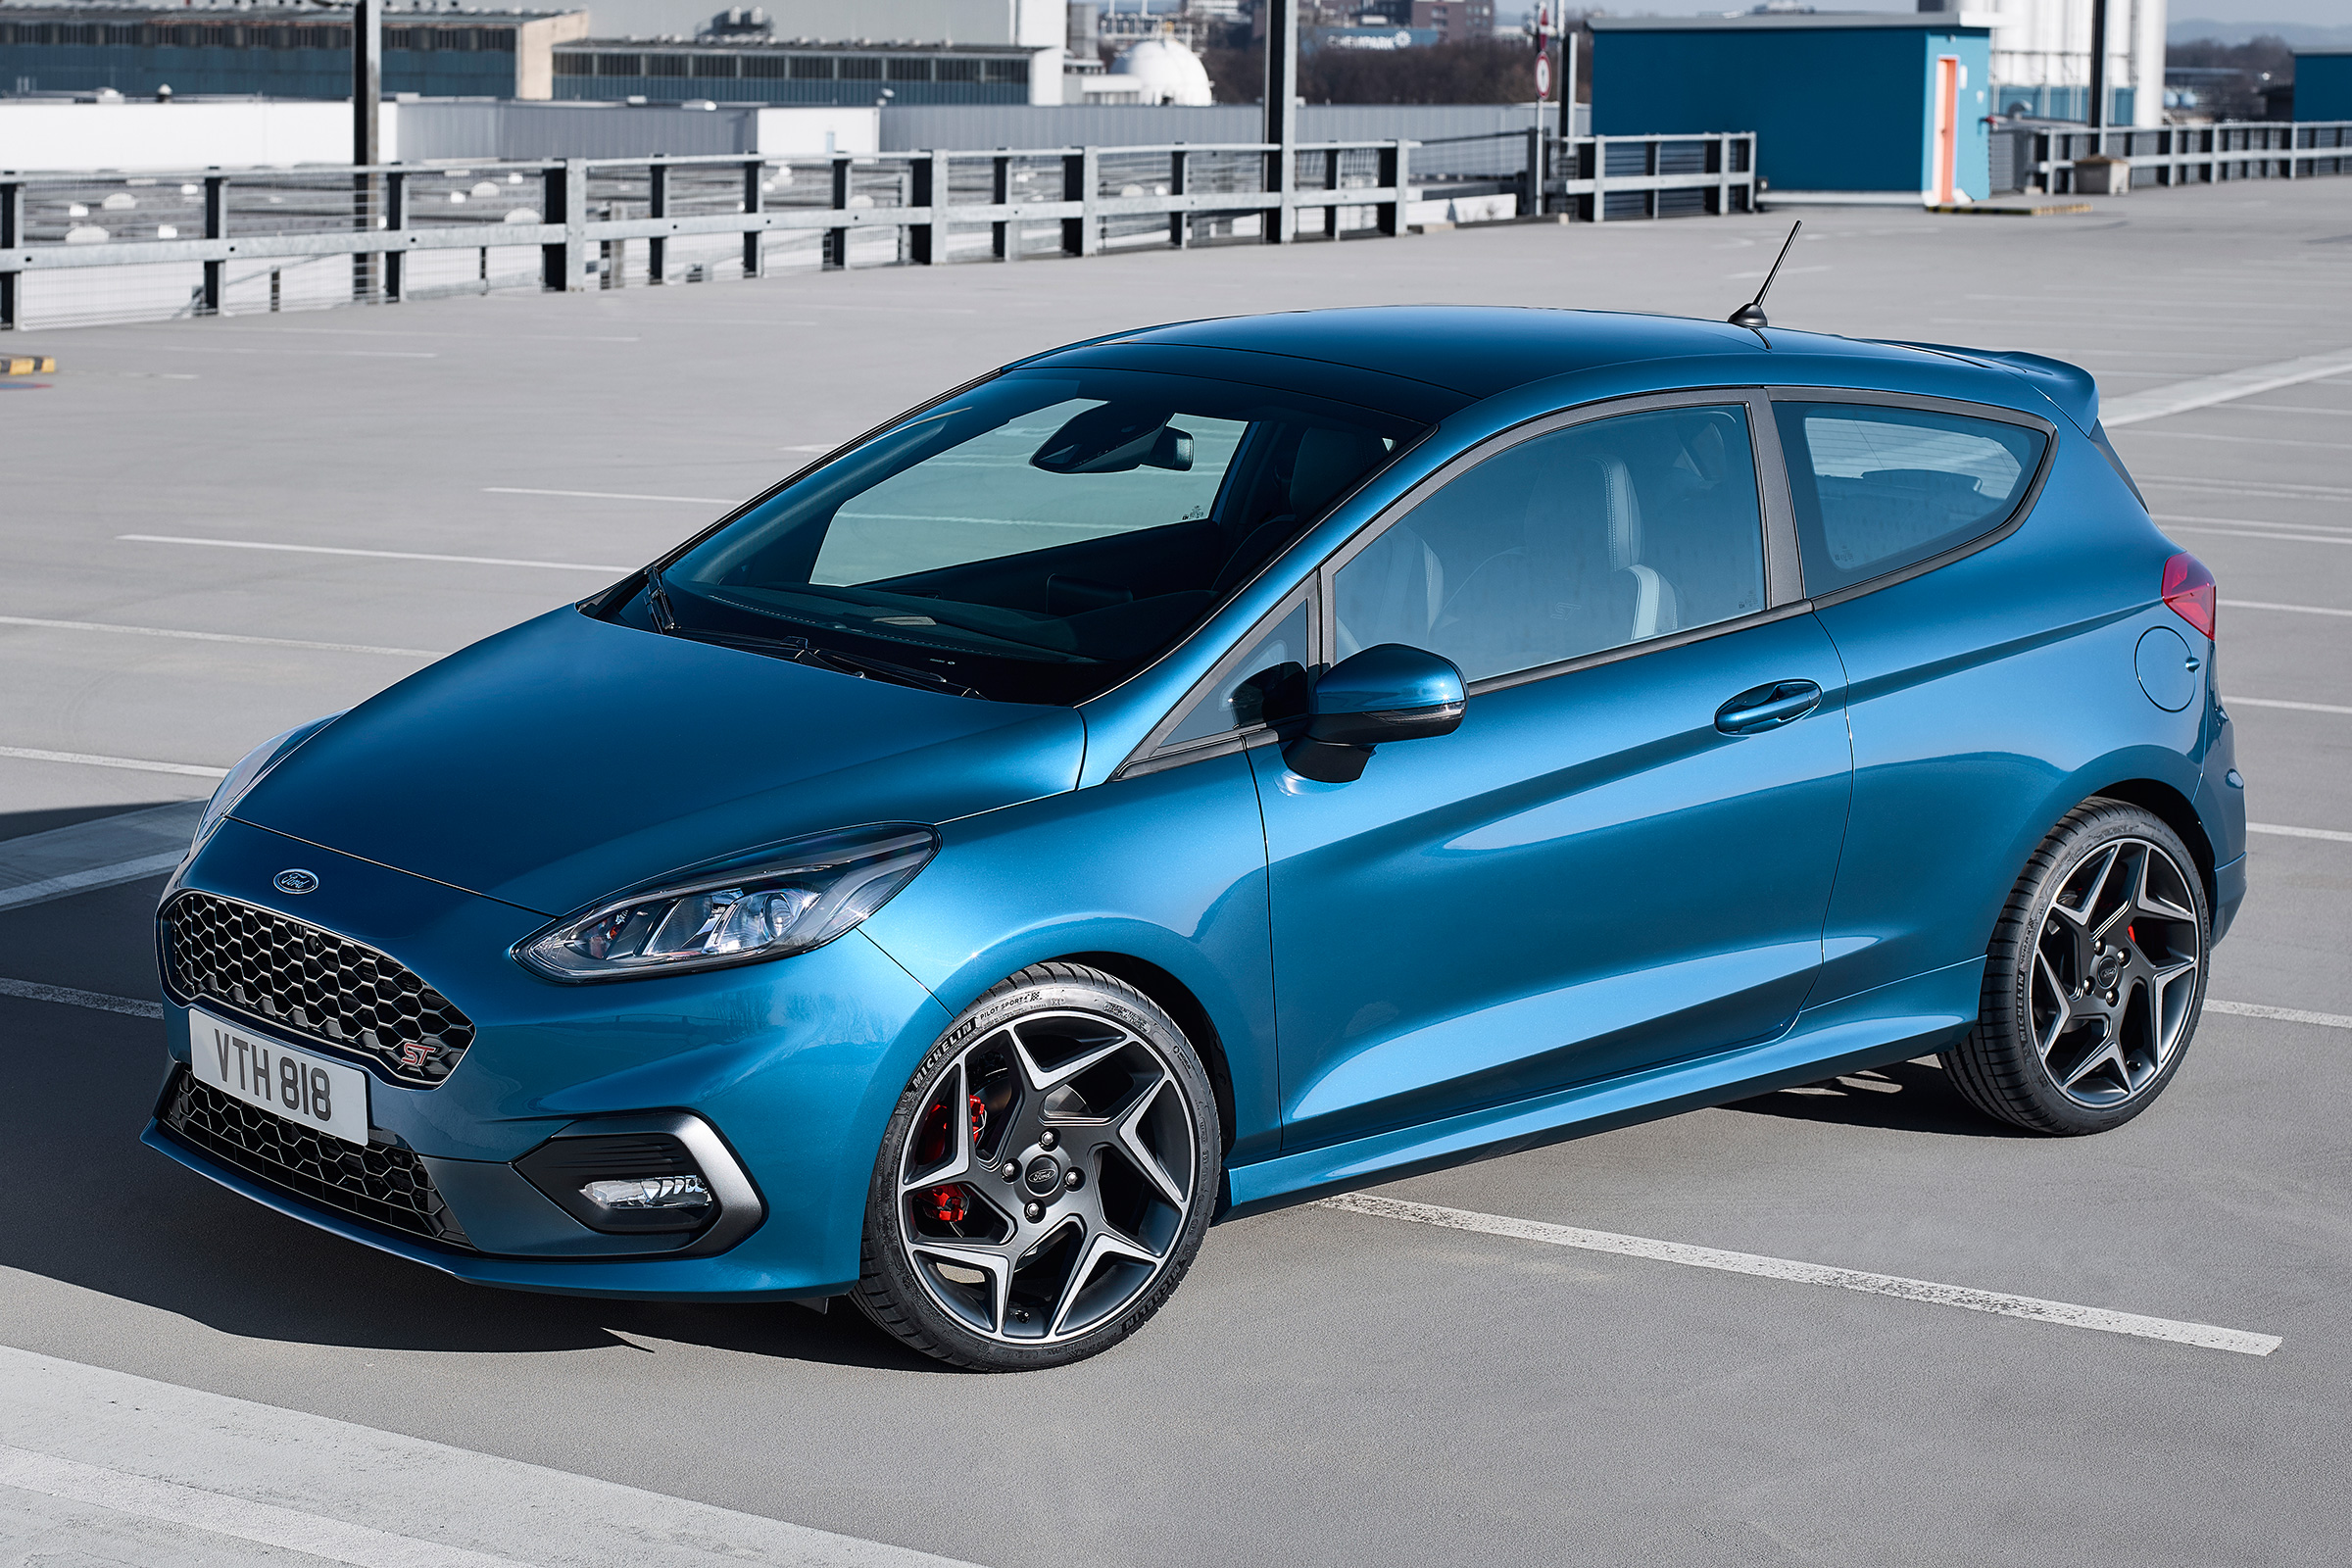 2018 ford fiesta st cars exclusive videos and photos updates. Black Bedroom Furniture Sets. Home Design Ideas